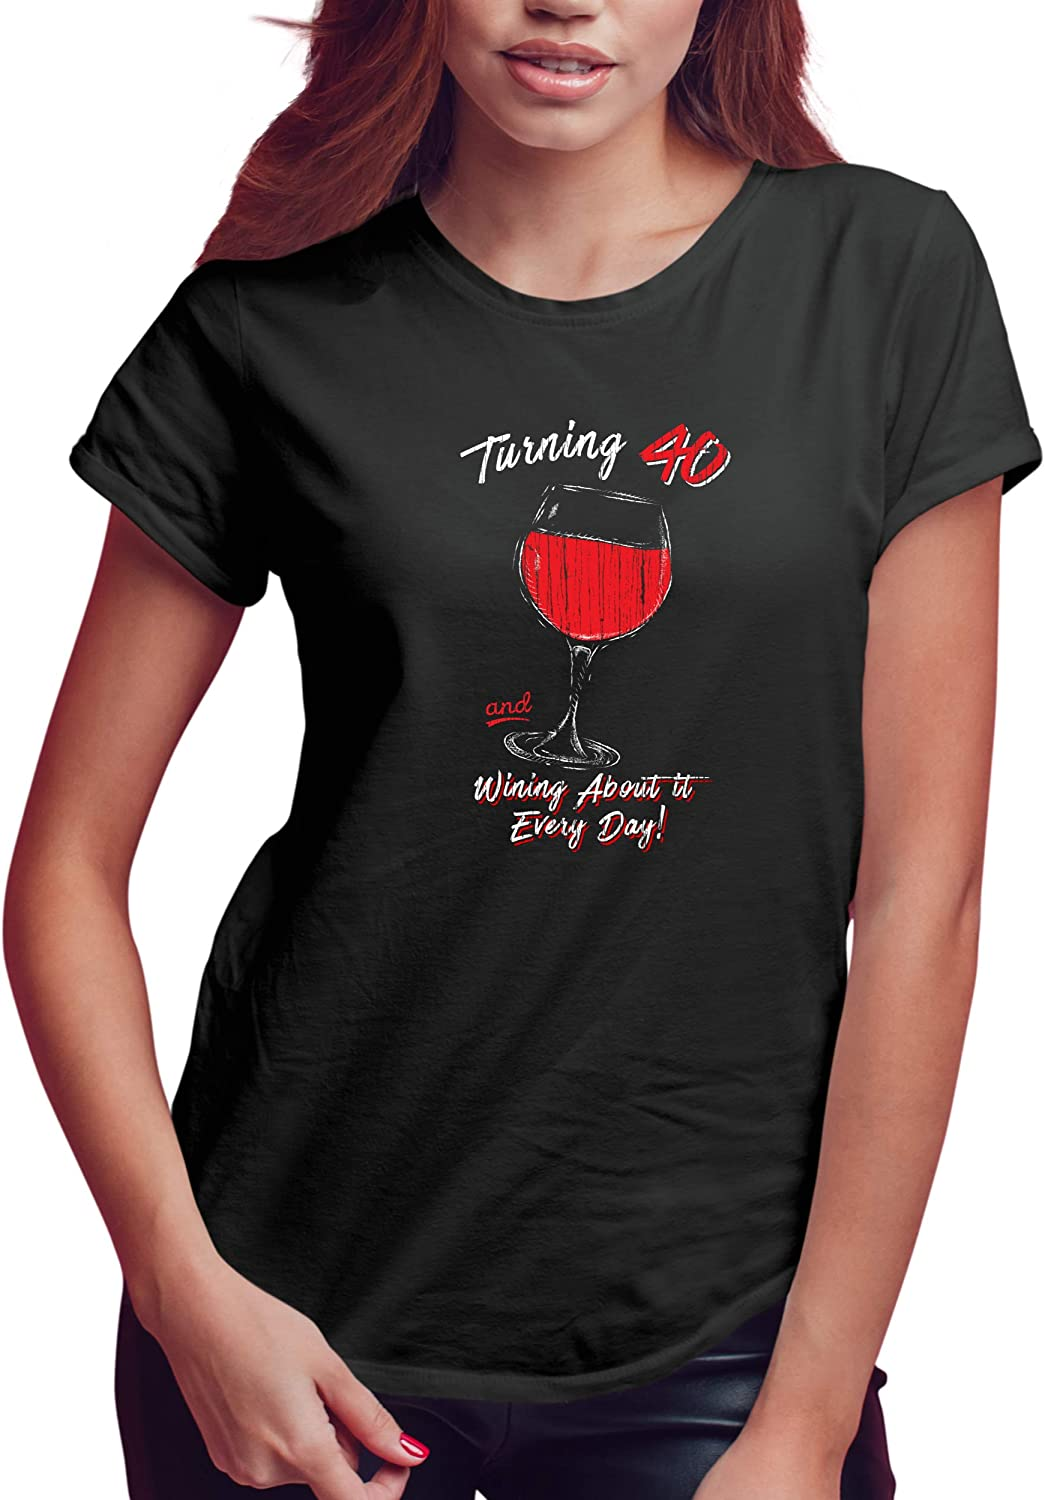 Texas Tees, 30th Birthday Shirt, 40th Birthday Gifts for Women,